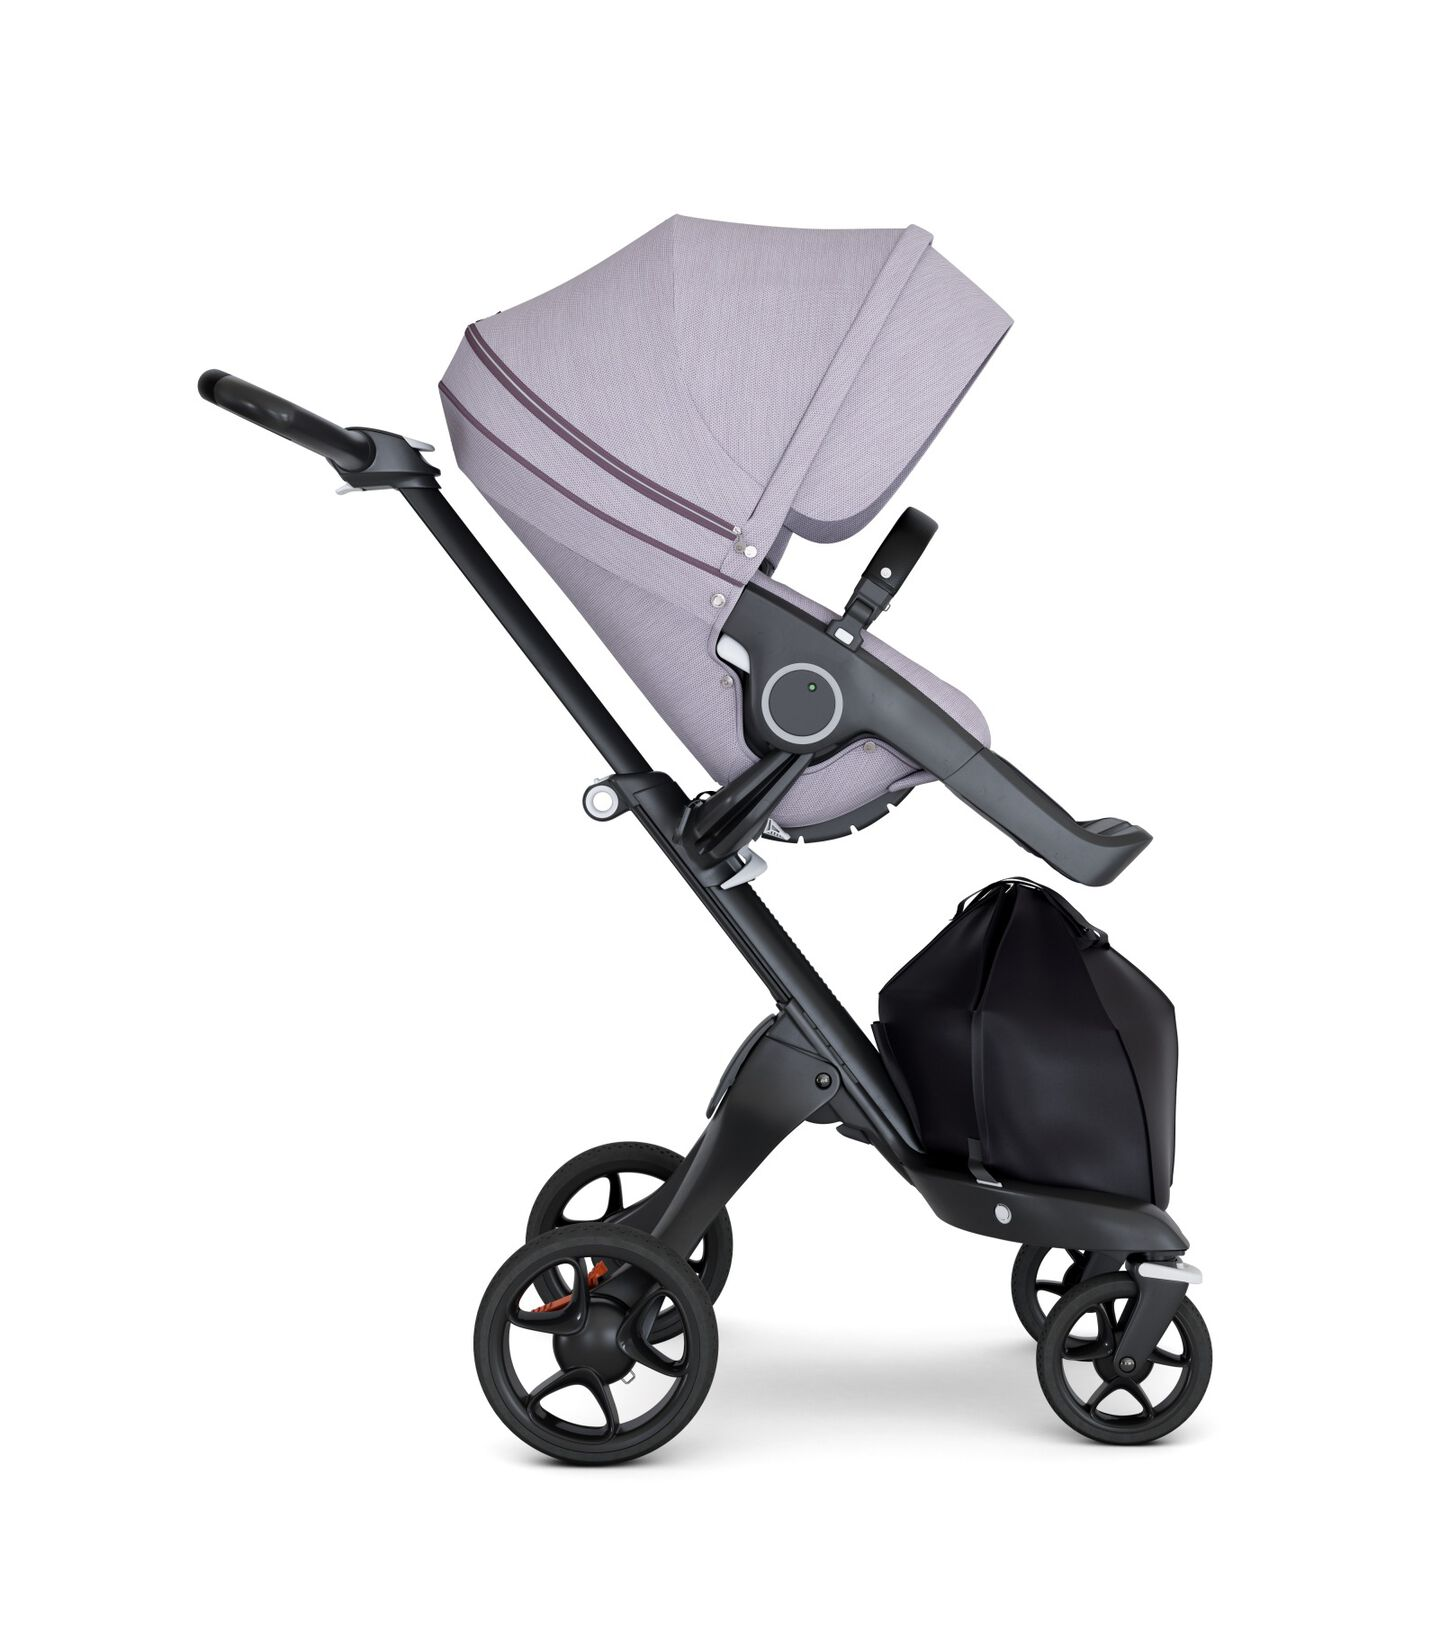 Stokke® Xplory® wtih Black Chassis and Leatherette Black handle. Stokke® Stroller Seat Seat Brushed Lilac. Forward facing.